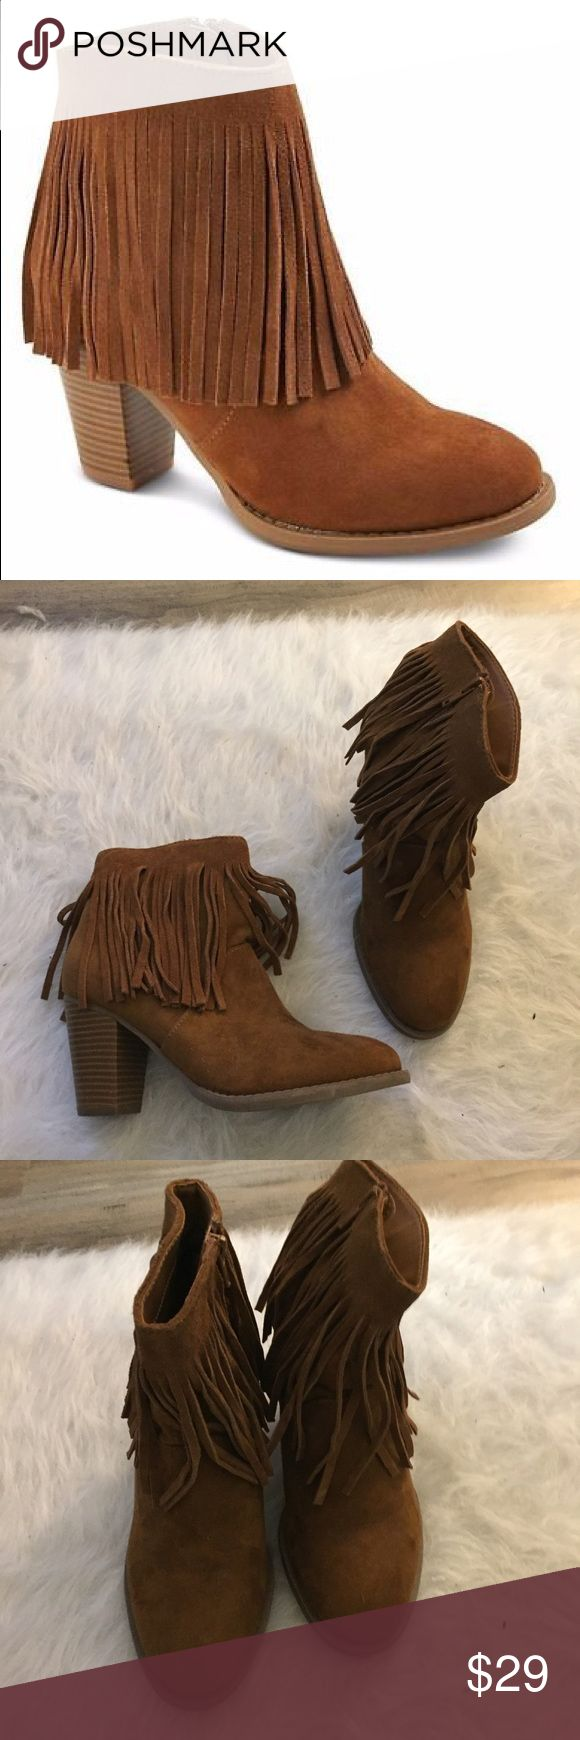 Heeled fringe boots Slip on some boho-chic style with these Women's Fringed Ankle Boots by Moss Supply Co. They feature a modern ankle height, 3-inch heel, fun fringe accents, faux suede finish and full side zipper that makes them easy to get on and off Mossimo Supply Co. Shoes Ankle Boots & Booties